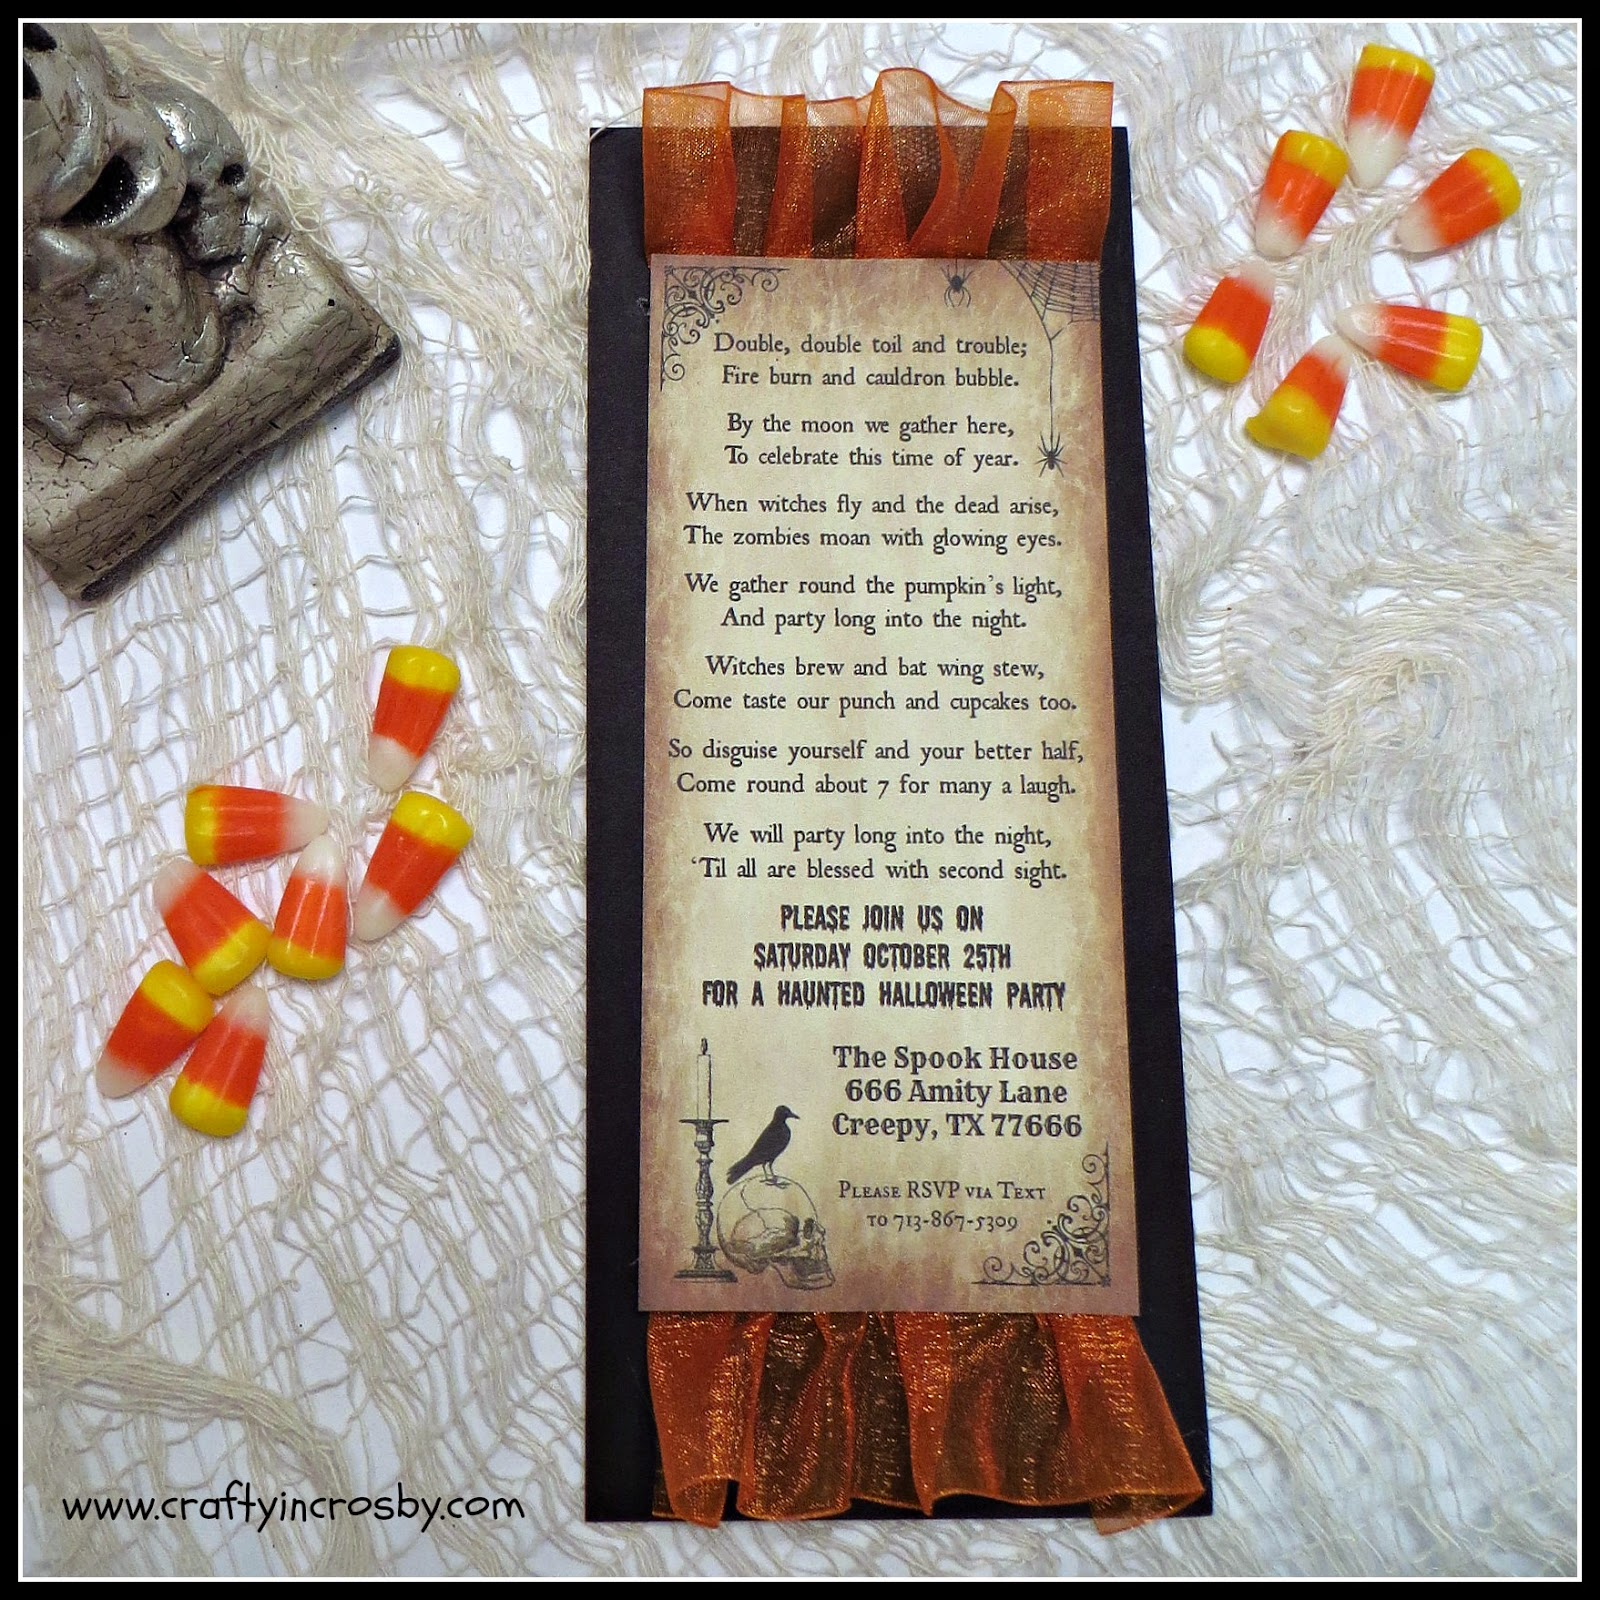 Halloween Party Invite Poem | Crafty In Crosby Halloween Party Invitation 2014